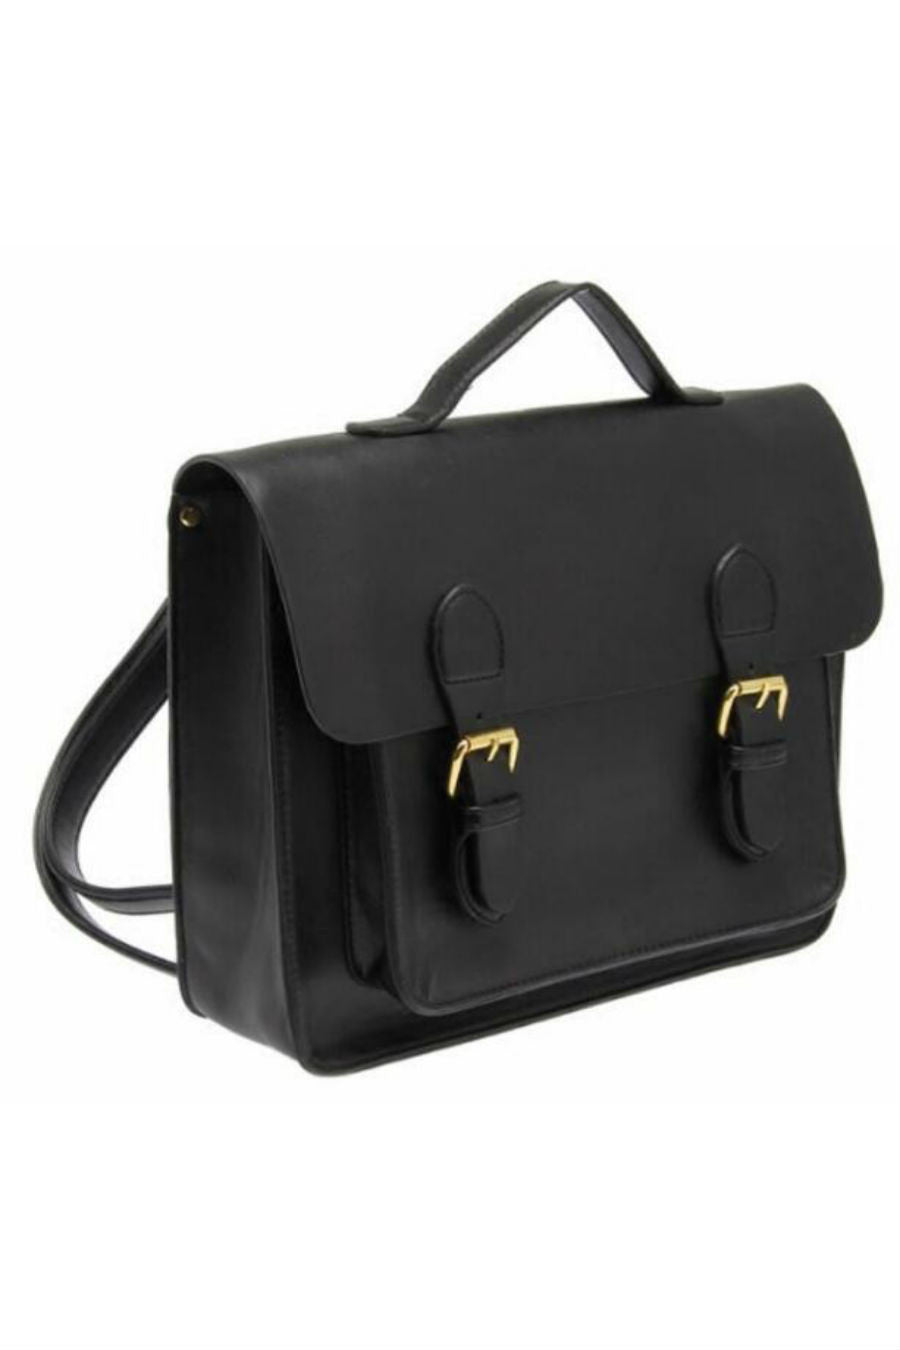 JK Fashion Black School Bag